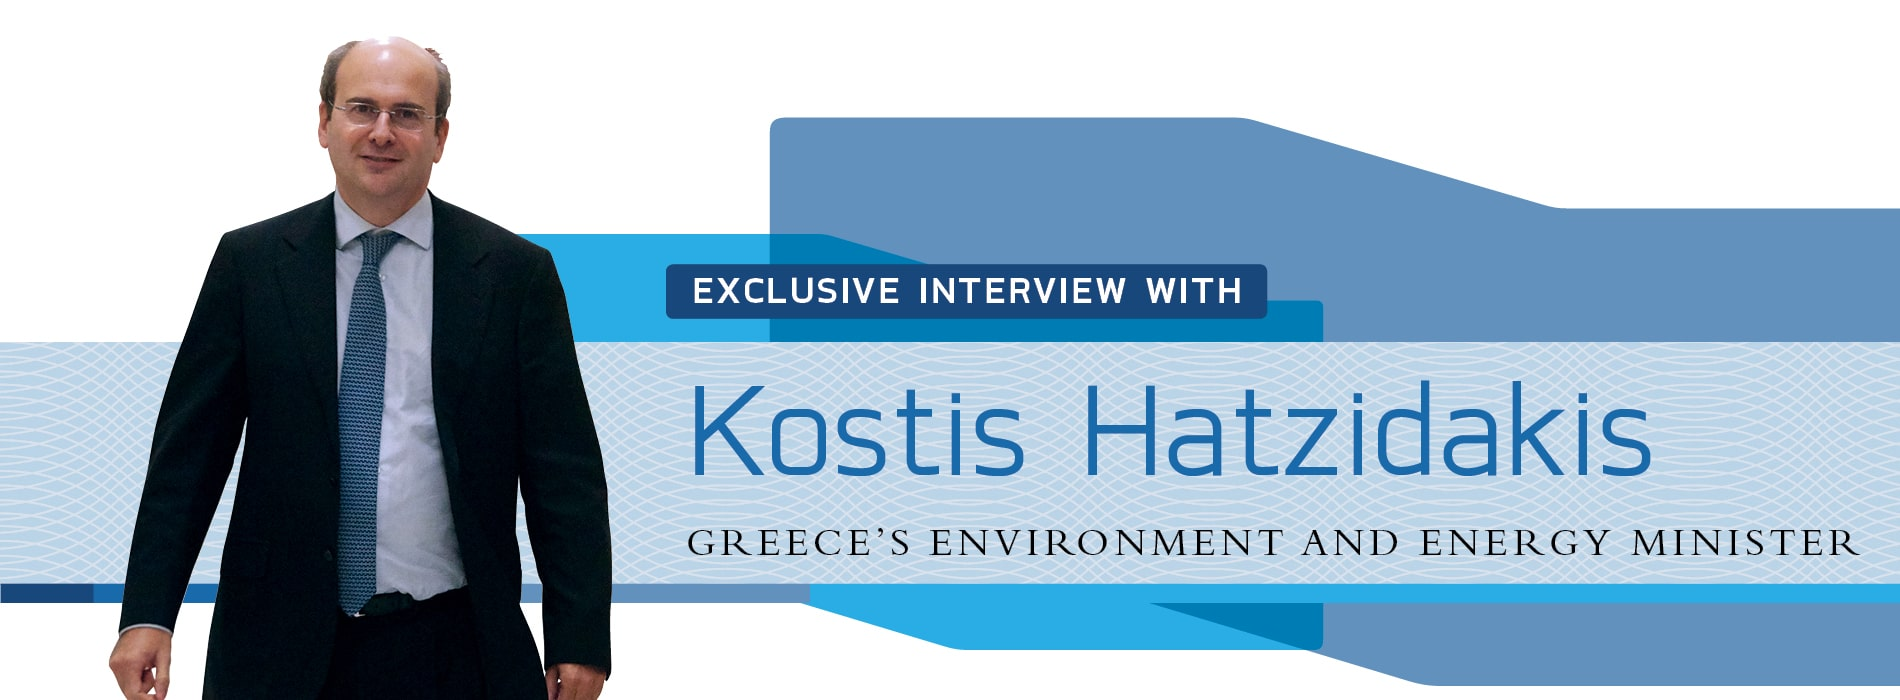 Interview with Kostis Hatzidakis,Greece's Environment and Energy Minister